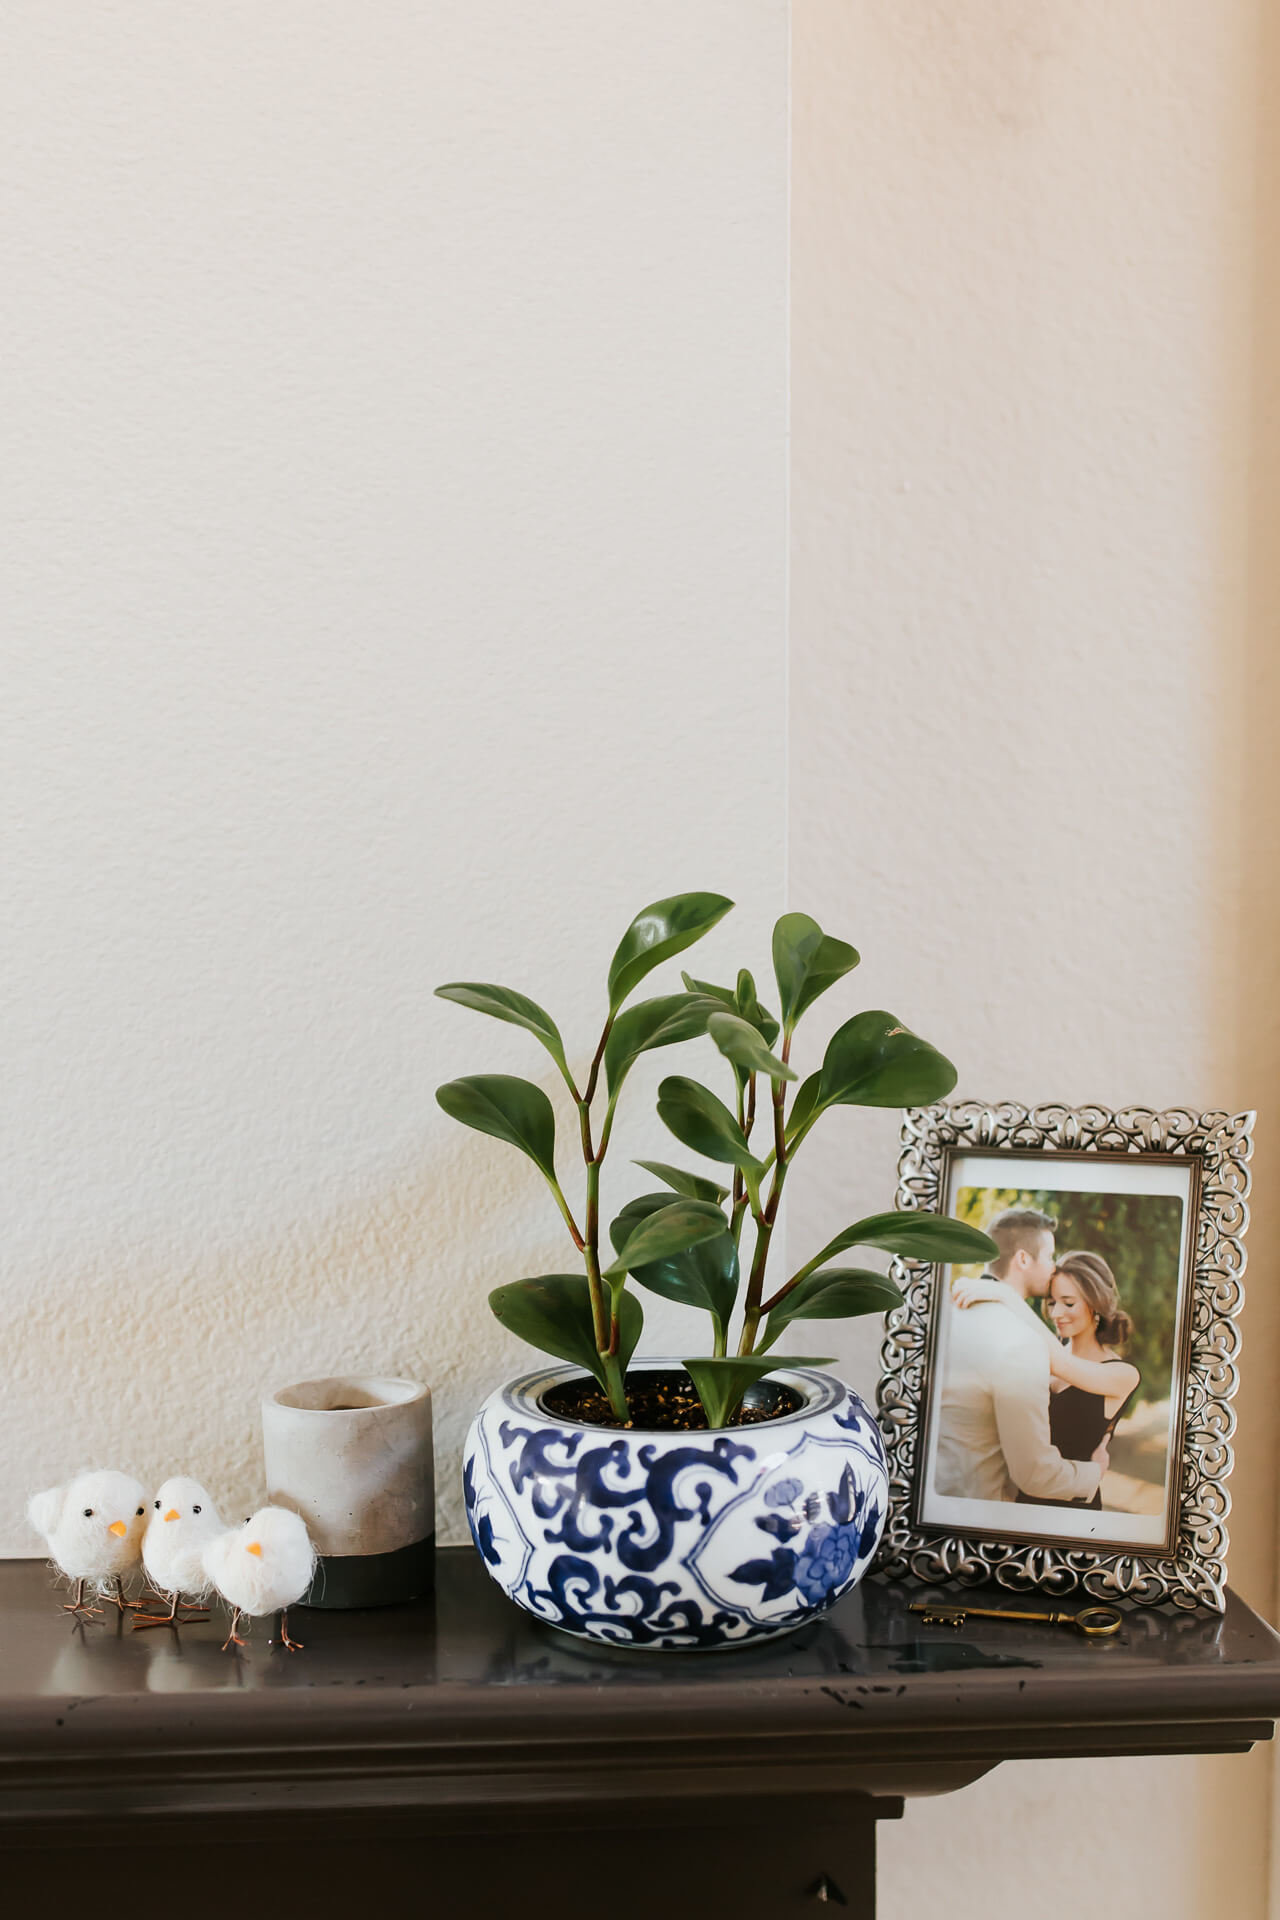 easy mantle styling ideas for spring or easter